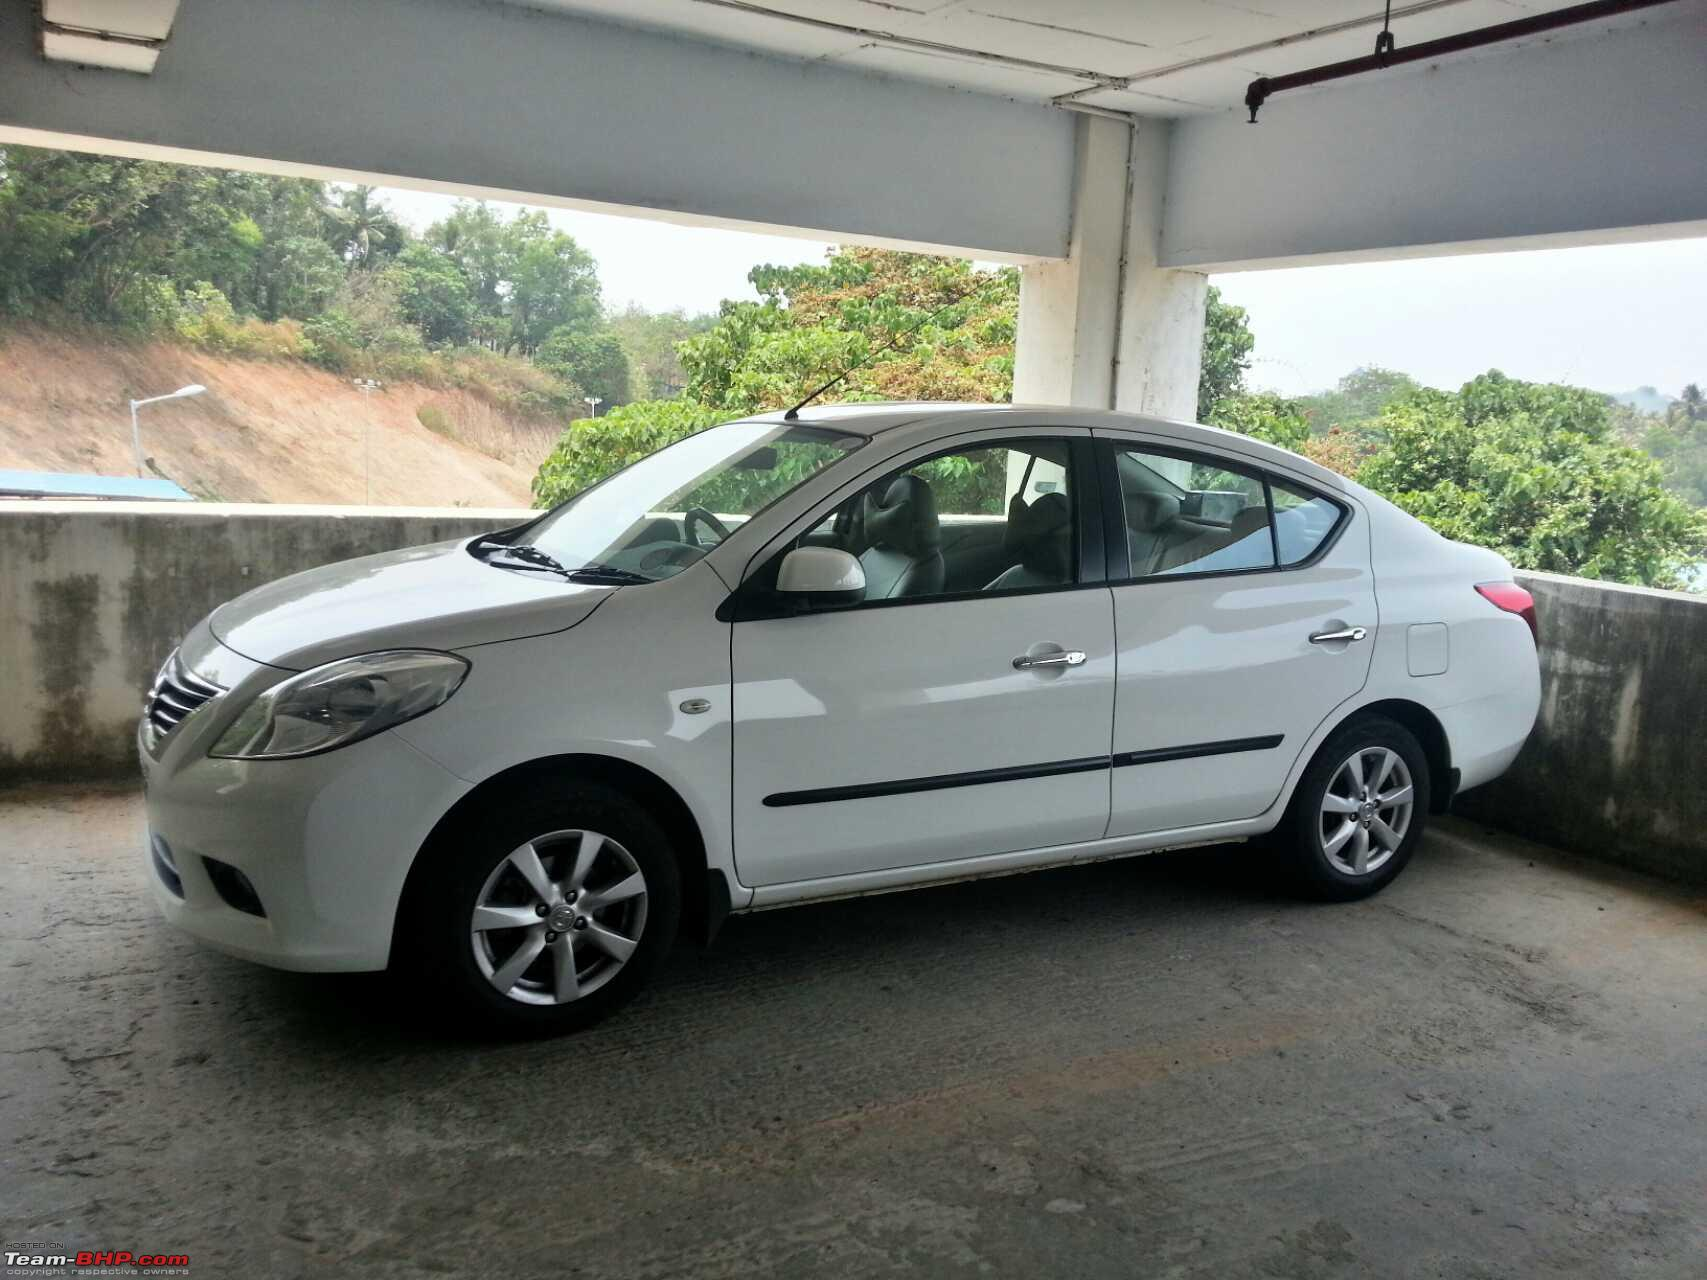 Nissan Sunny: How to make it look better? - Team-BHP